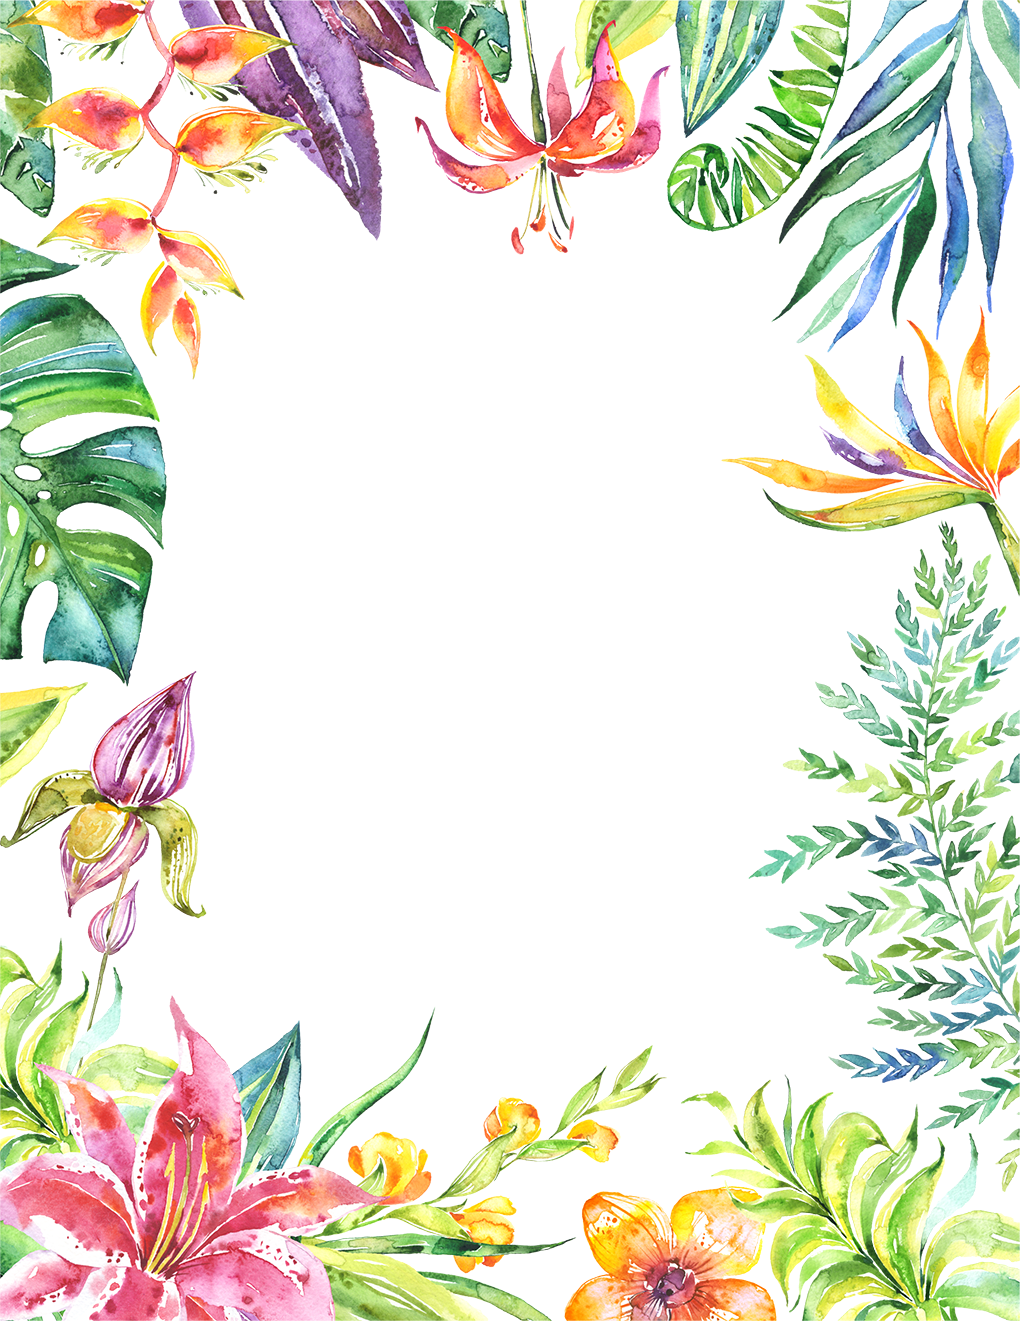 Tropical frame png. Leaves flowers plants border